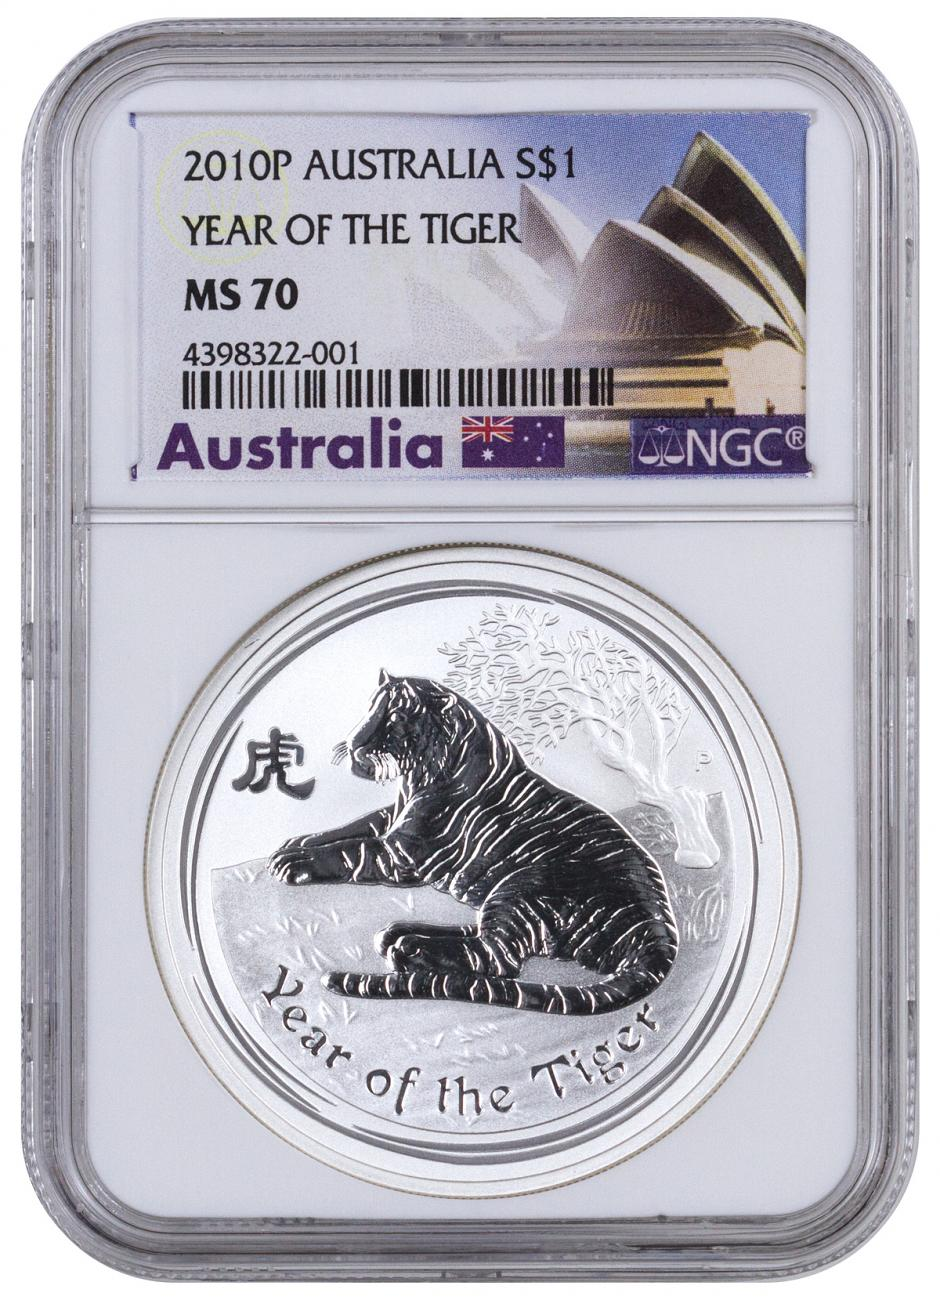 2010 Australia Year of the Tiger 1 oz Silver Lunar (Series 2) $1 Coin NGC MS70 Exclusive Australia Label